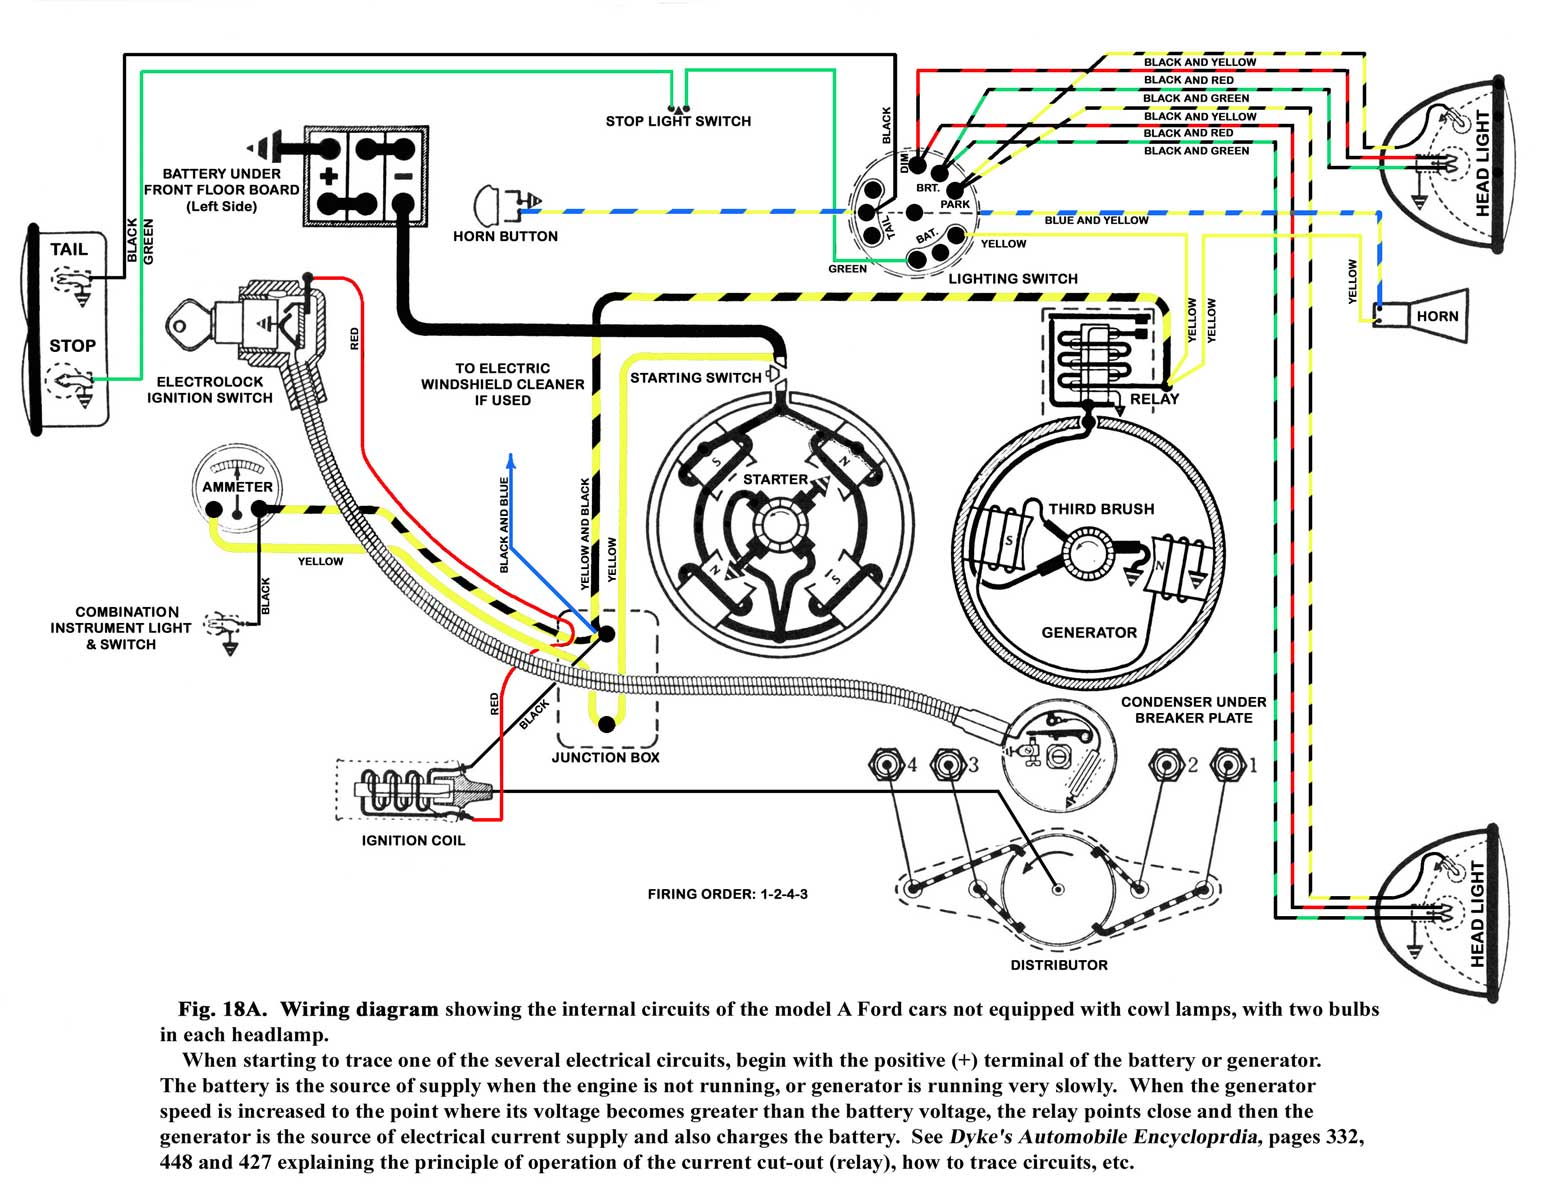 1930 harley electrical diagram wiring diagram rh 2 steinkatz de